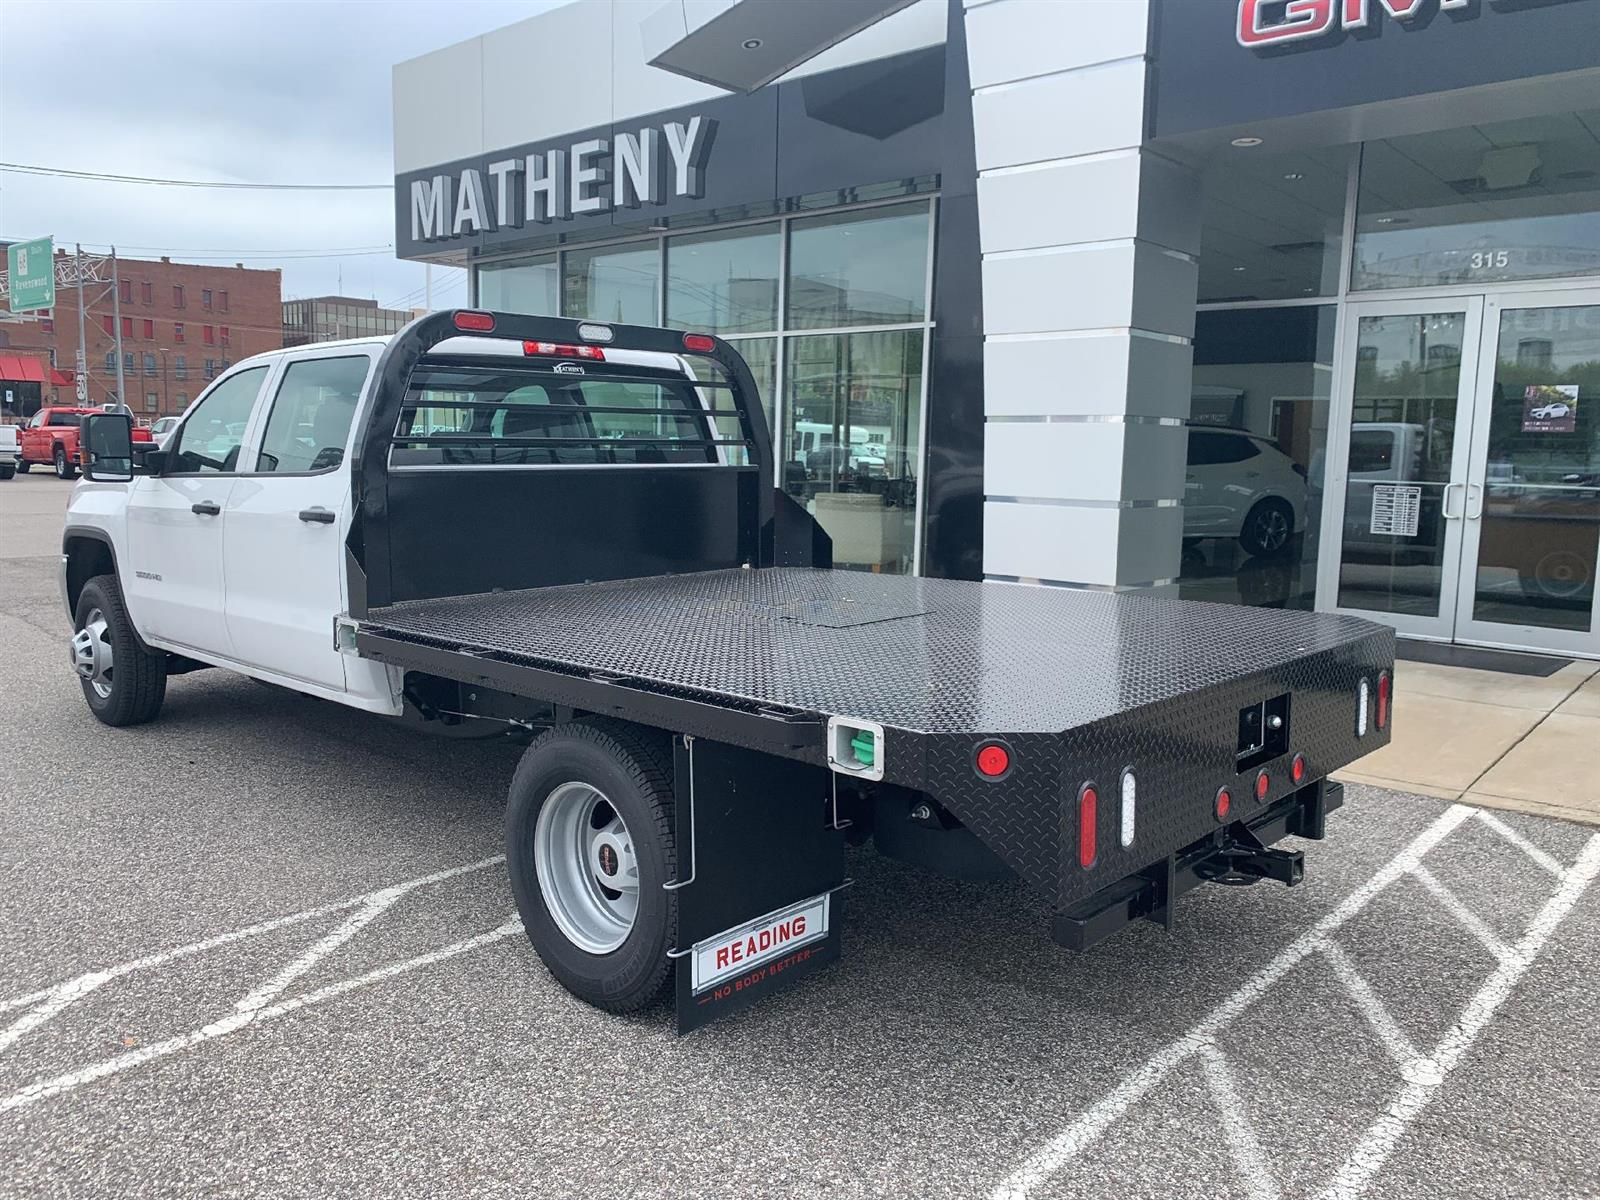 2019 GMC Sierra 3500 Crew Cab DRW 4x4, Reading Redi-Dek Platform Body #254765 - photo 2